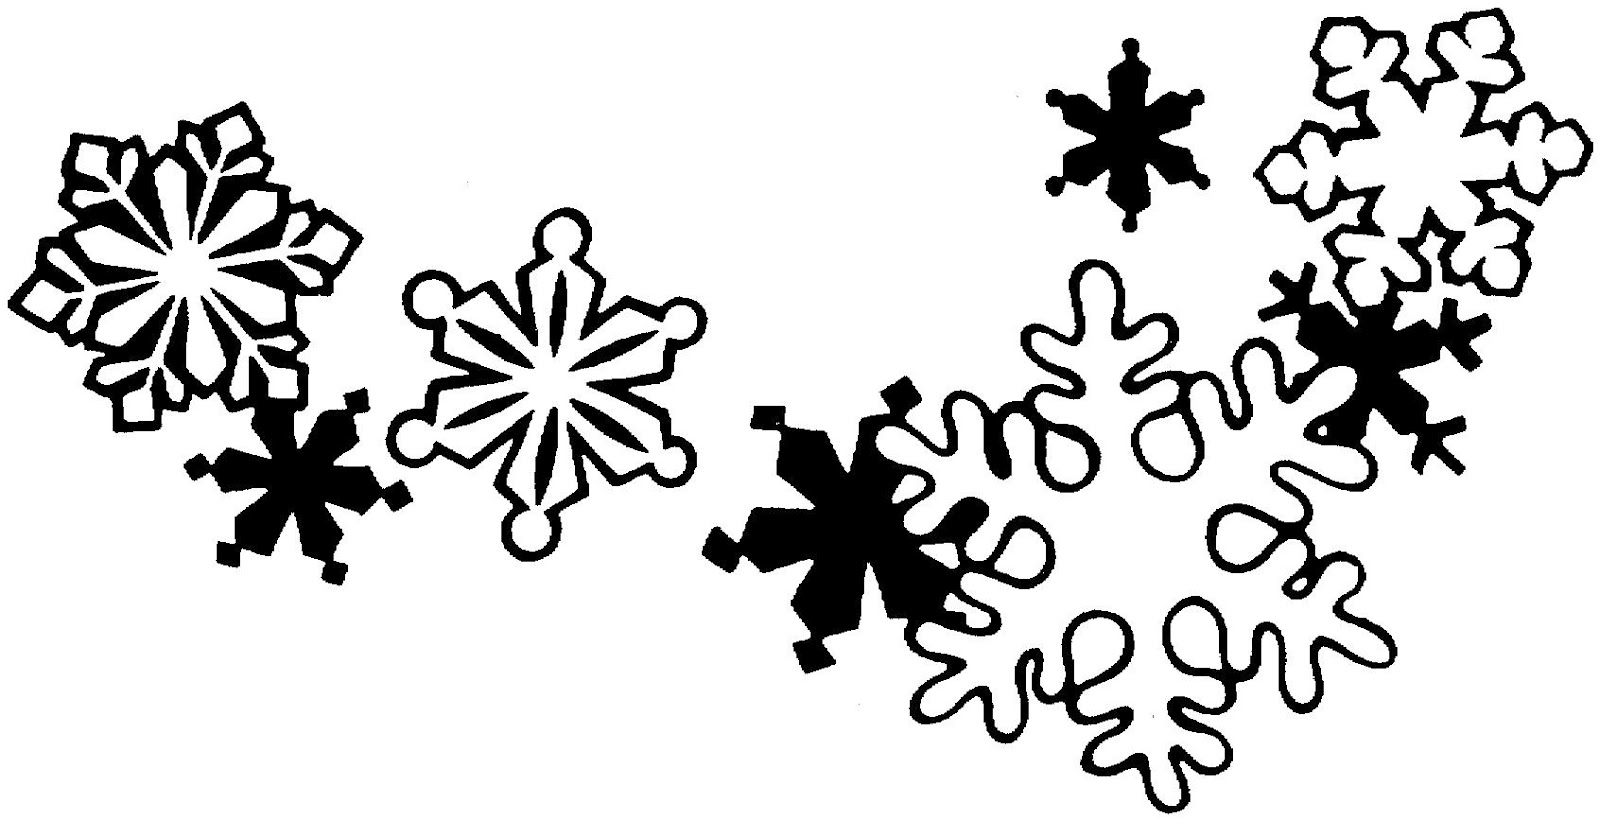 Winter holiday clipart black and white free graphic freeuse download Free Christmas Garland Clipart Black And White, Download Free Clip ... graphic freeuse download